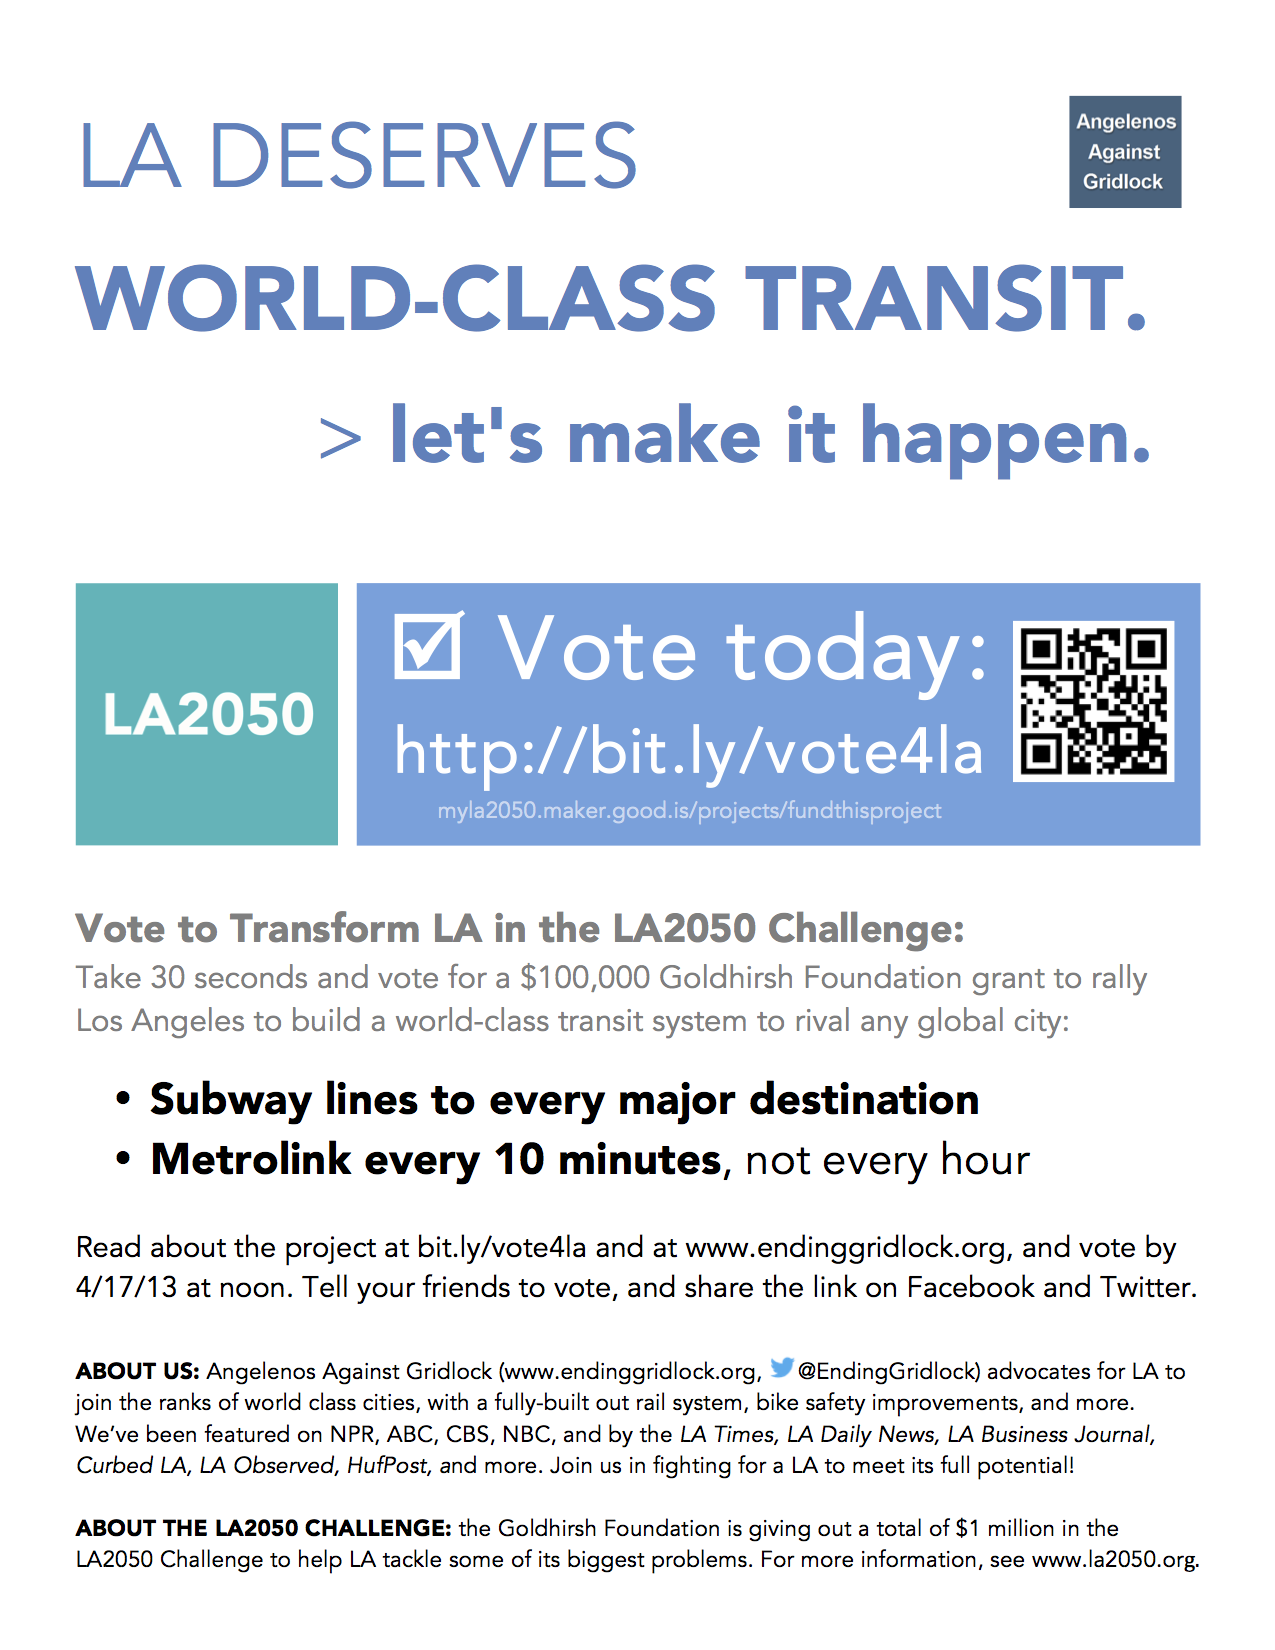 The fact is, the current construction project on the 405 isn't enough. Commuters deserve rail connections, too. Vote for the Faster 405 Campaign's parent organization, Angelenos Against Gridlock, in the LA2050 Challenge, and help make it happen. Share this flyer with friends and colleagues. Here's a downloadable PDF / Scribd document that you can email or embed.